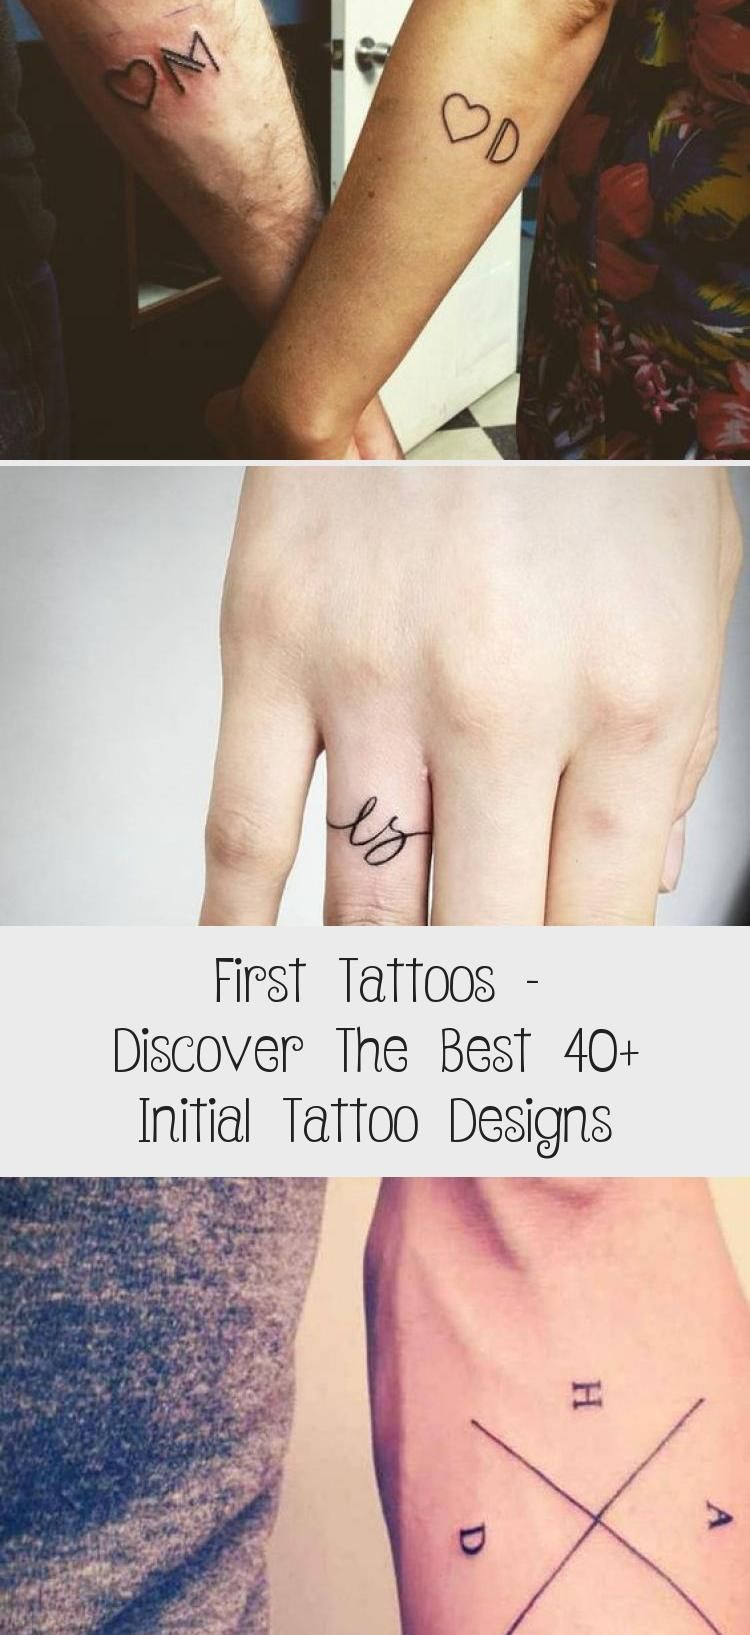 First tattoos  Discover the best 40 Initial Tattoo Designs  First tattoos  Discover the best 40 Initial Tattoo Designs